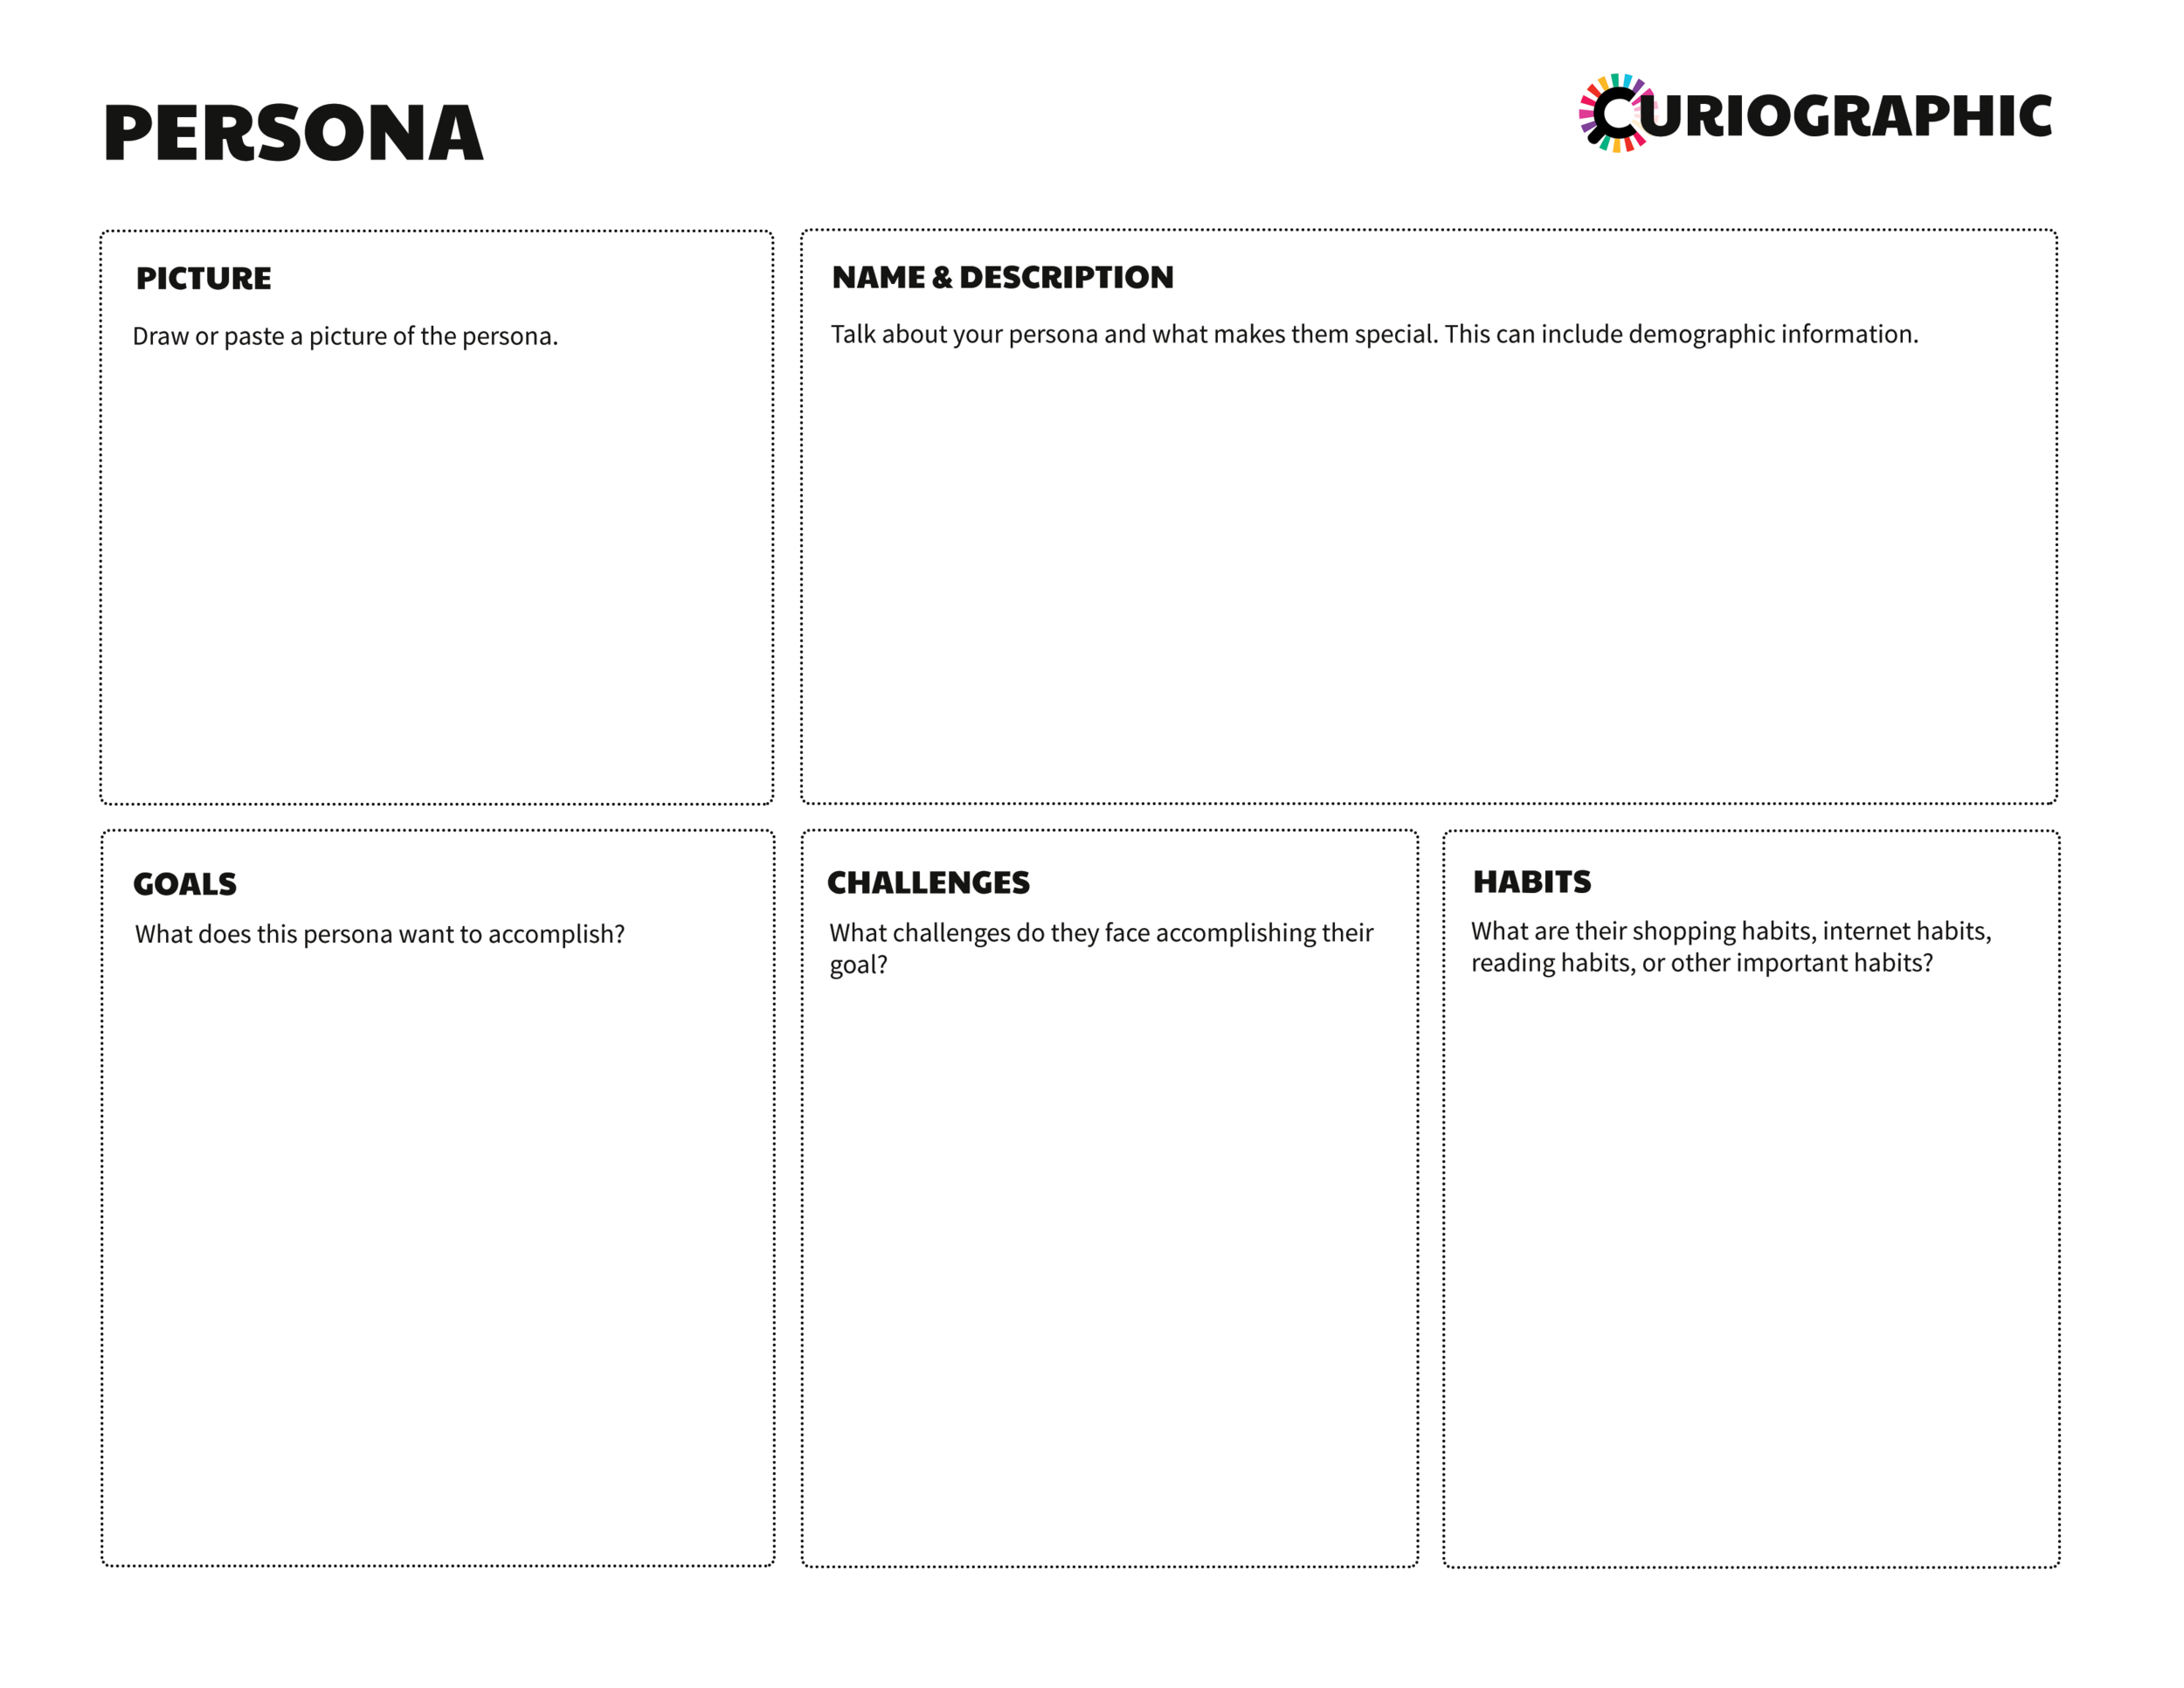 Persona Template - Let our persona template help you get started making personas for your comic projects!